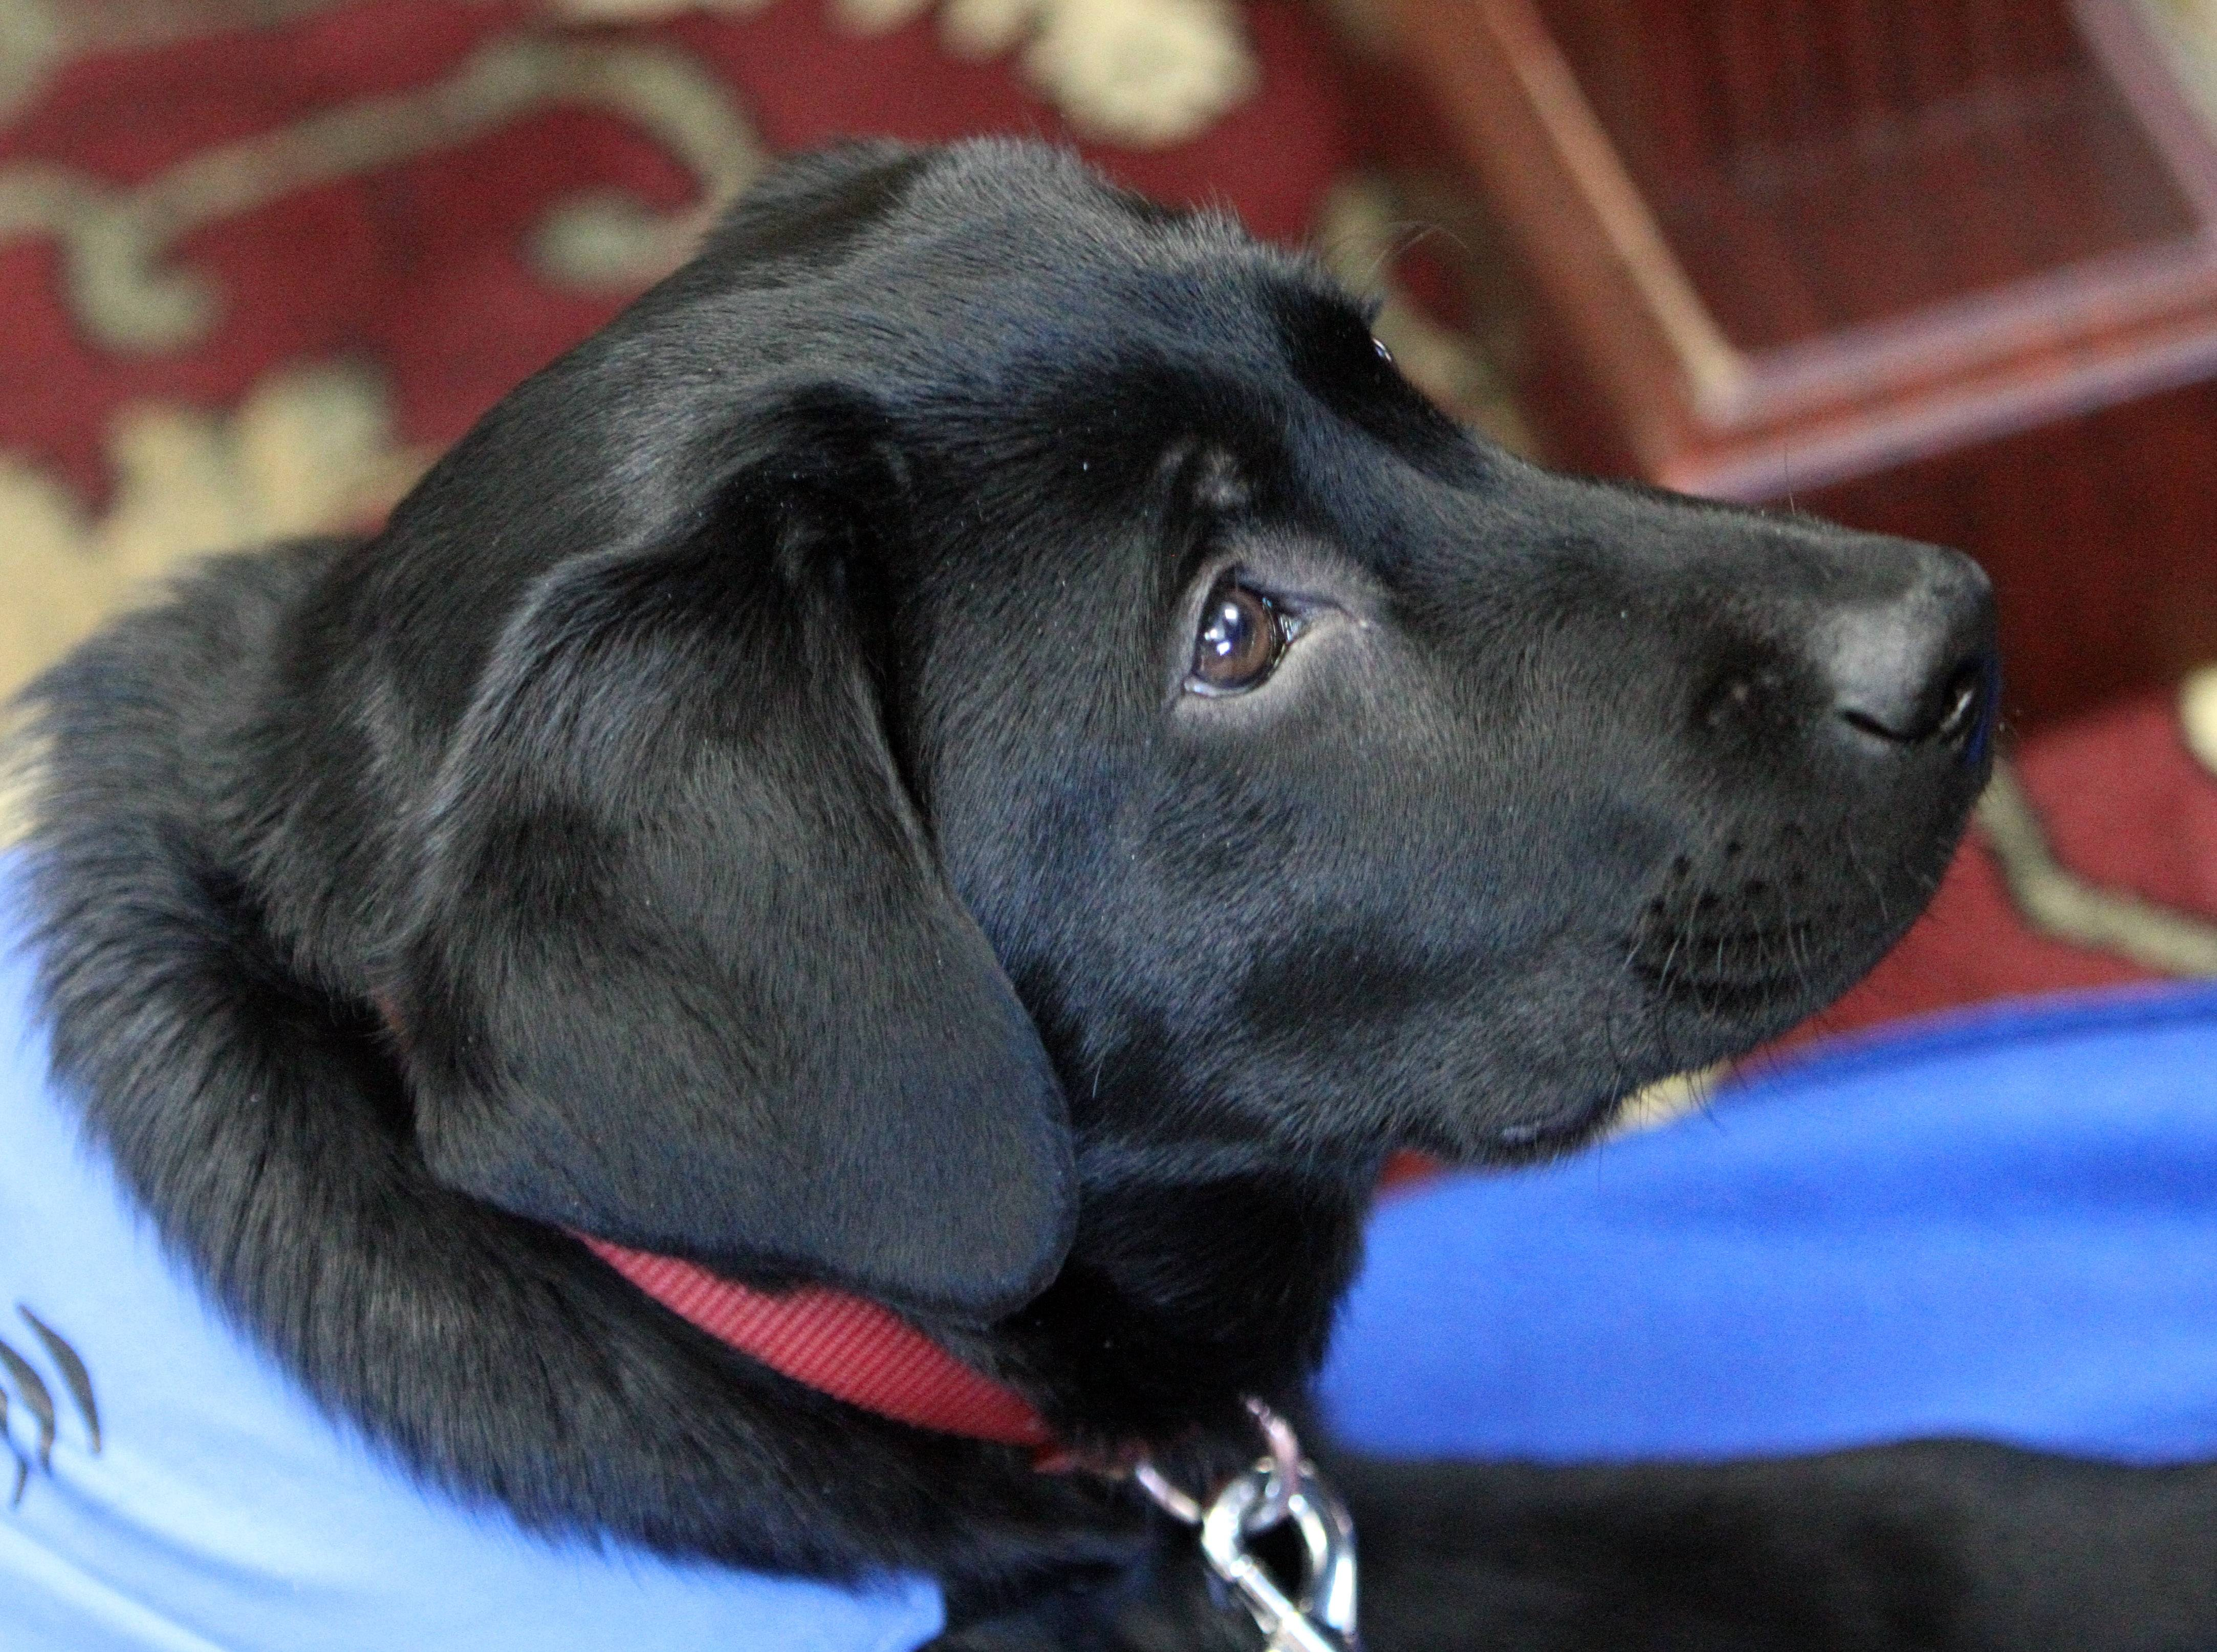 Bailey, a 5-month-old black Labrador, keeps her eyes fixed on Grayslake Central High School junior Abby Perkowitz. She received permission to use the school as part of Bailey's training to become a guide dog.